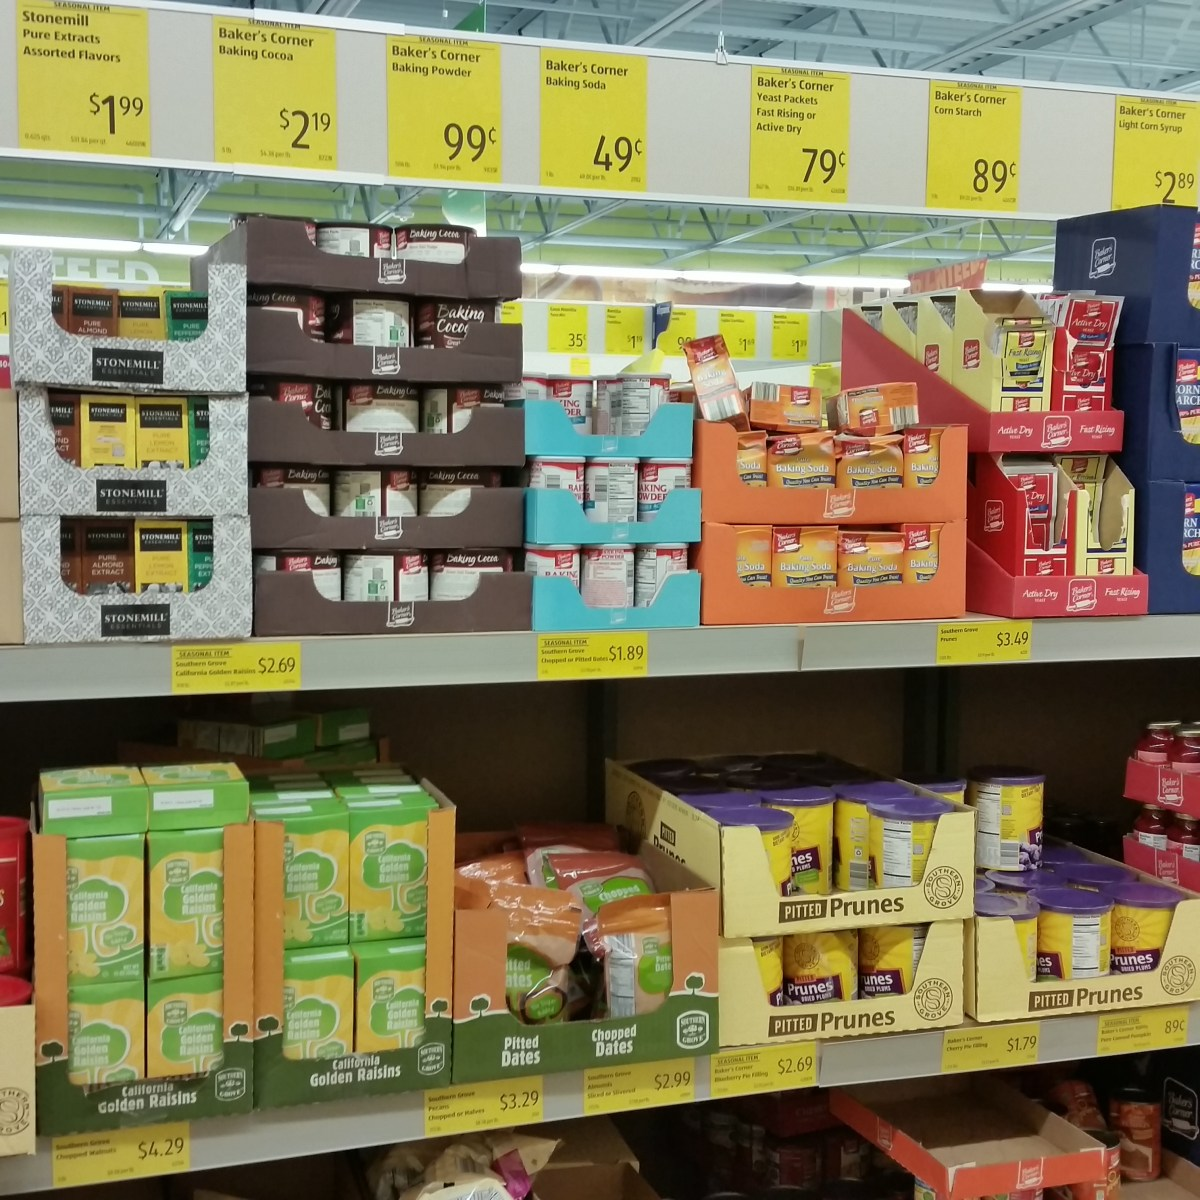 Vegan on a Budget: A Guide to Shopping at Aldi